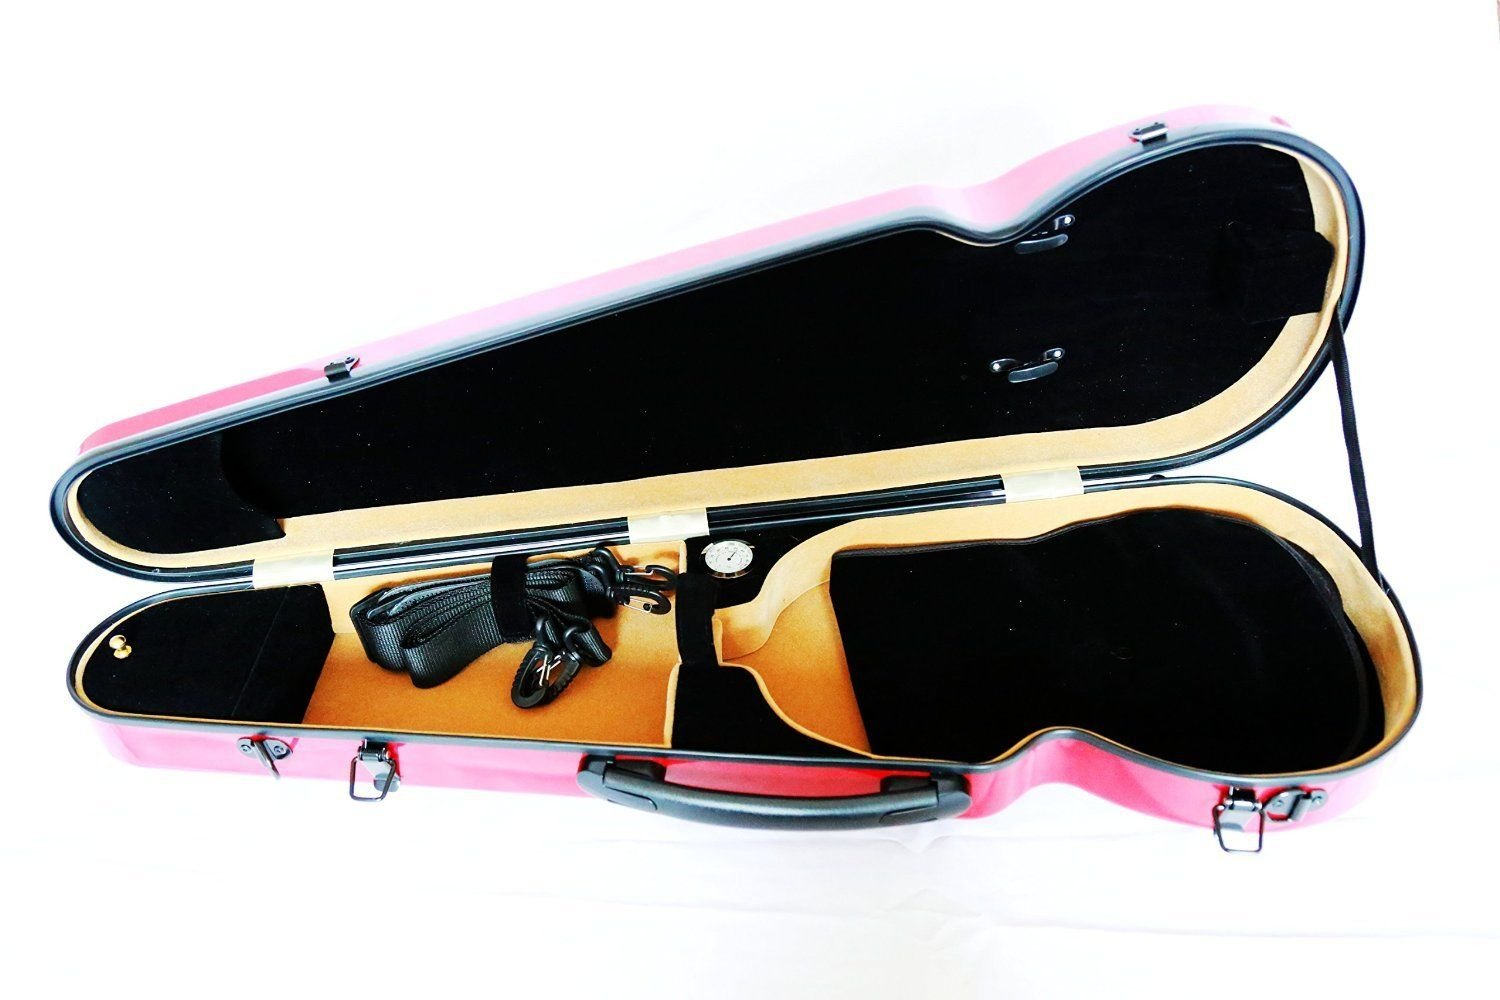 Vio Music Full Size Hightech Carbon-Like Combo Violin Case 4/4-Red, New Design